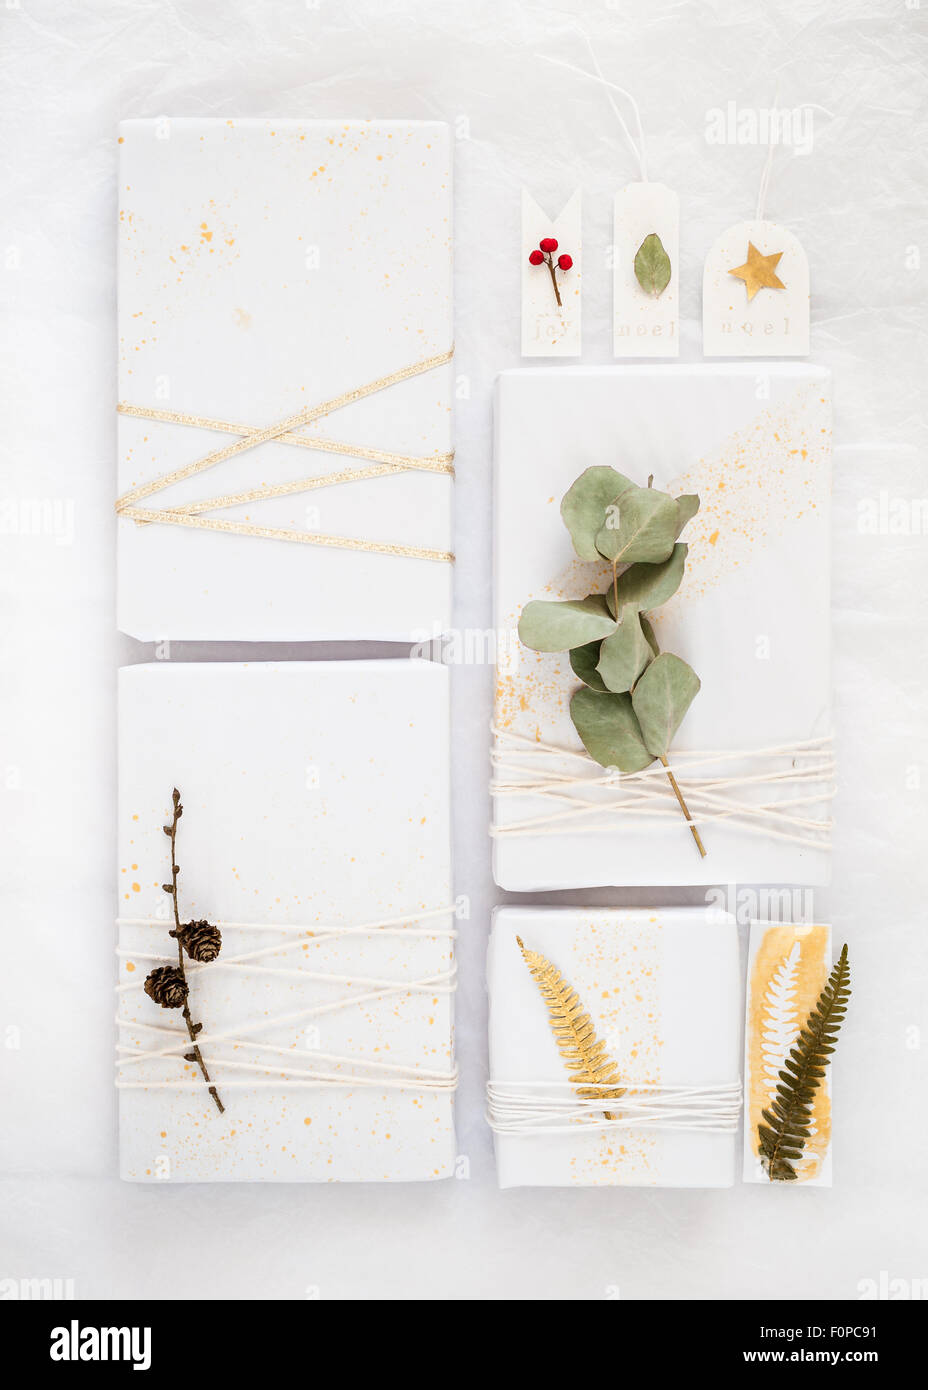 4 different creative gift wrapping ideas made with white tissue paper splattered gold paint twine ribbon and natural - Stock Image